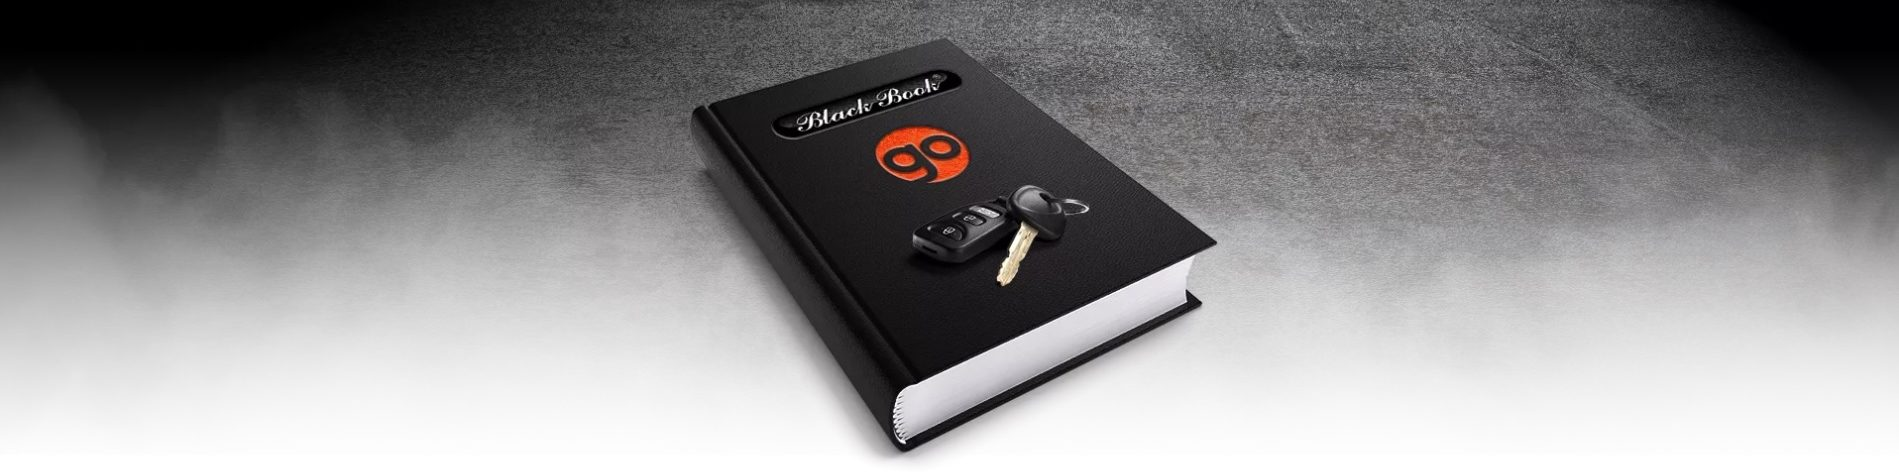 go-auto-outlet-black-book